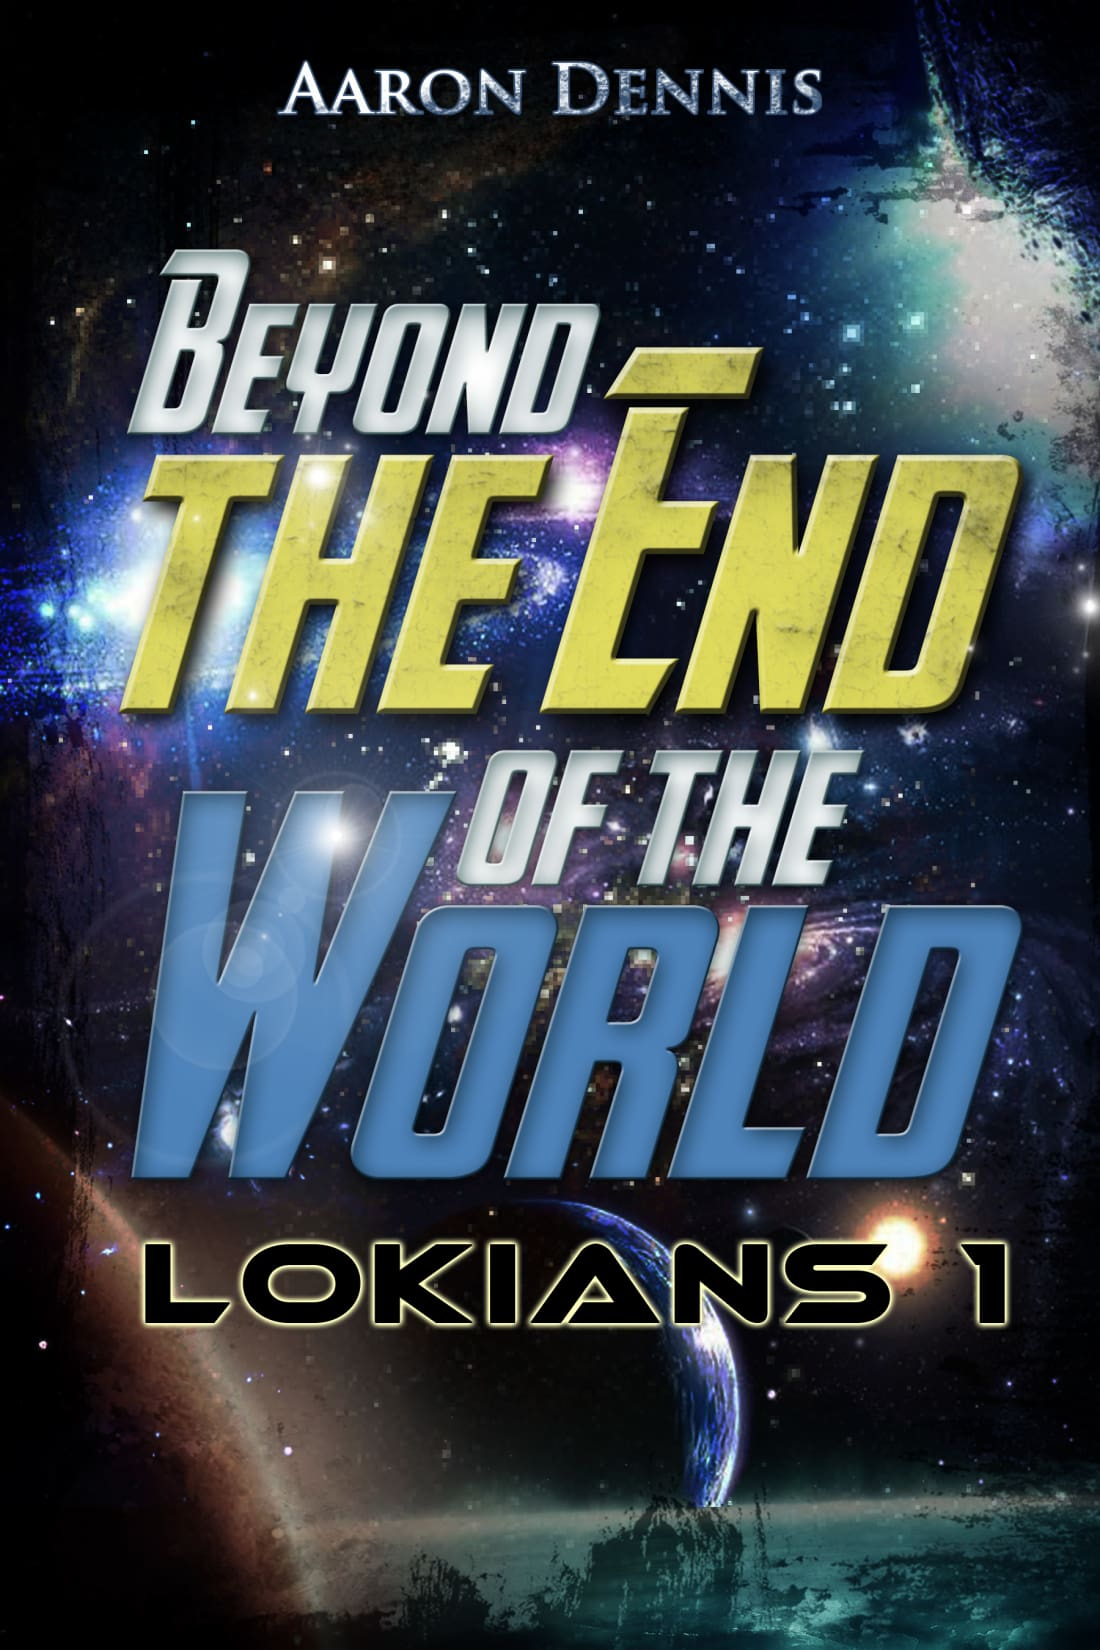 Part 3 of Beyond the End of the World, Lokians 1